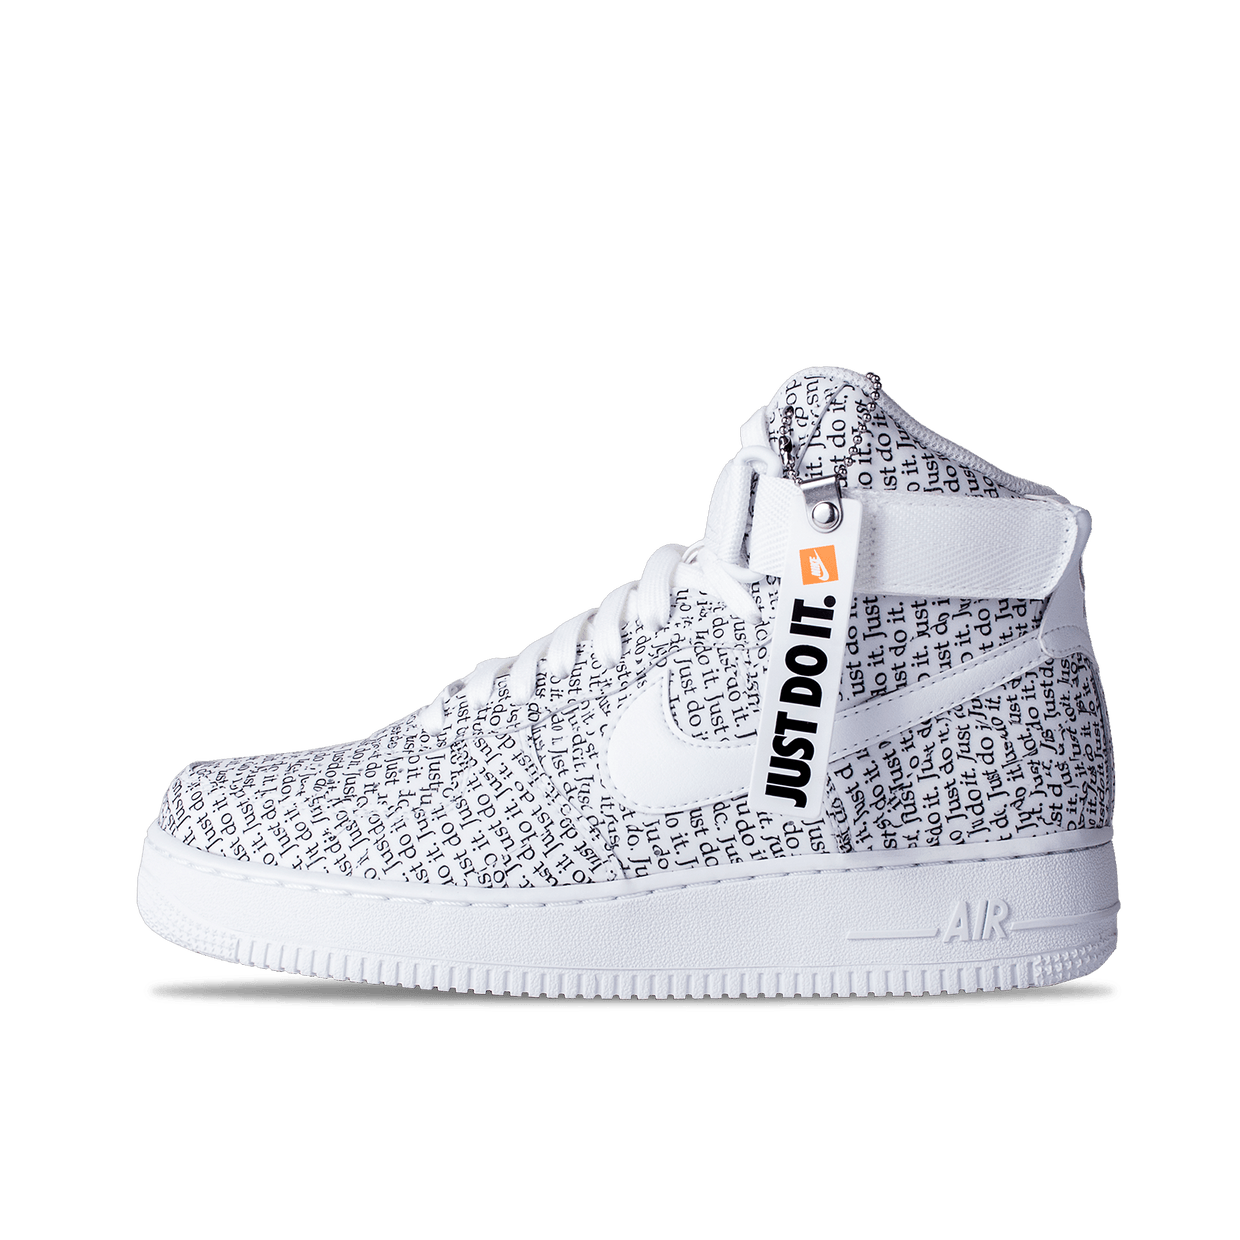 WMNS Air Force 1 HI LX - White/Black